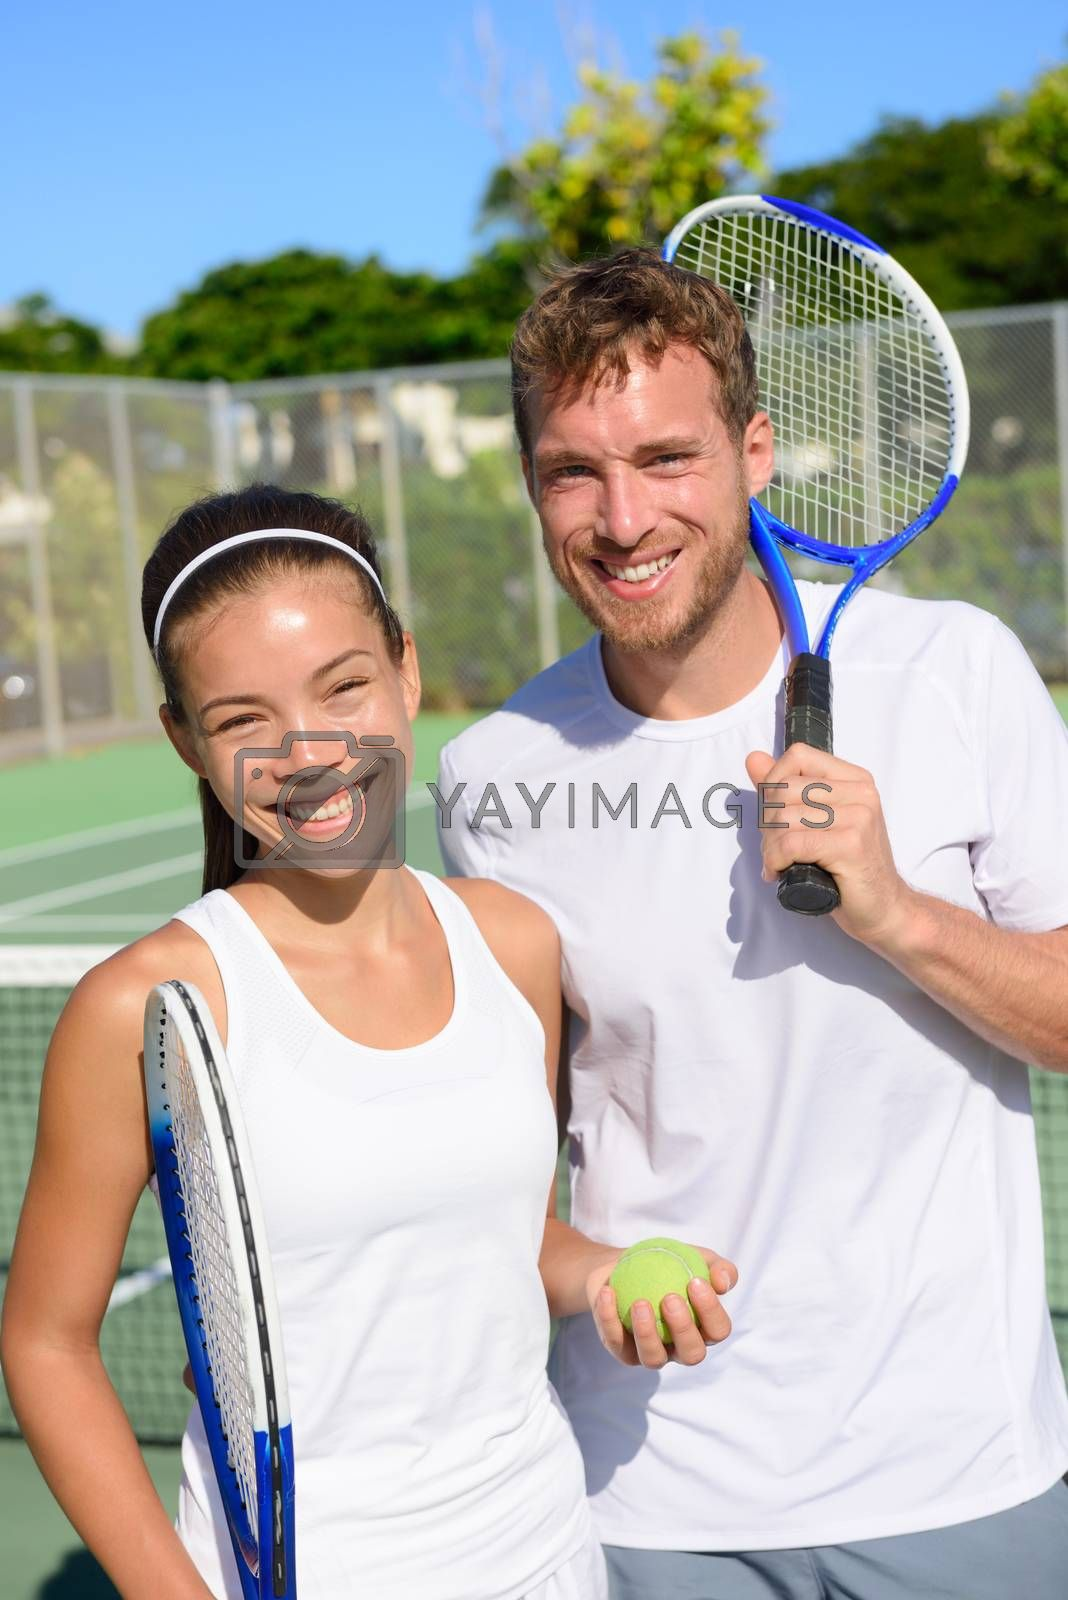 Tennis sport - Mixed doubles couple players portrait relaxing after playing game outside in summer. Happy smiling people on outdoor tennis court living healthy active lifestyle. Woman and man athletes